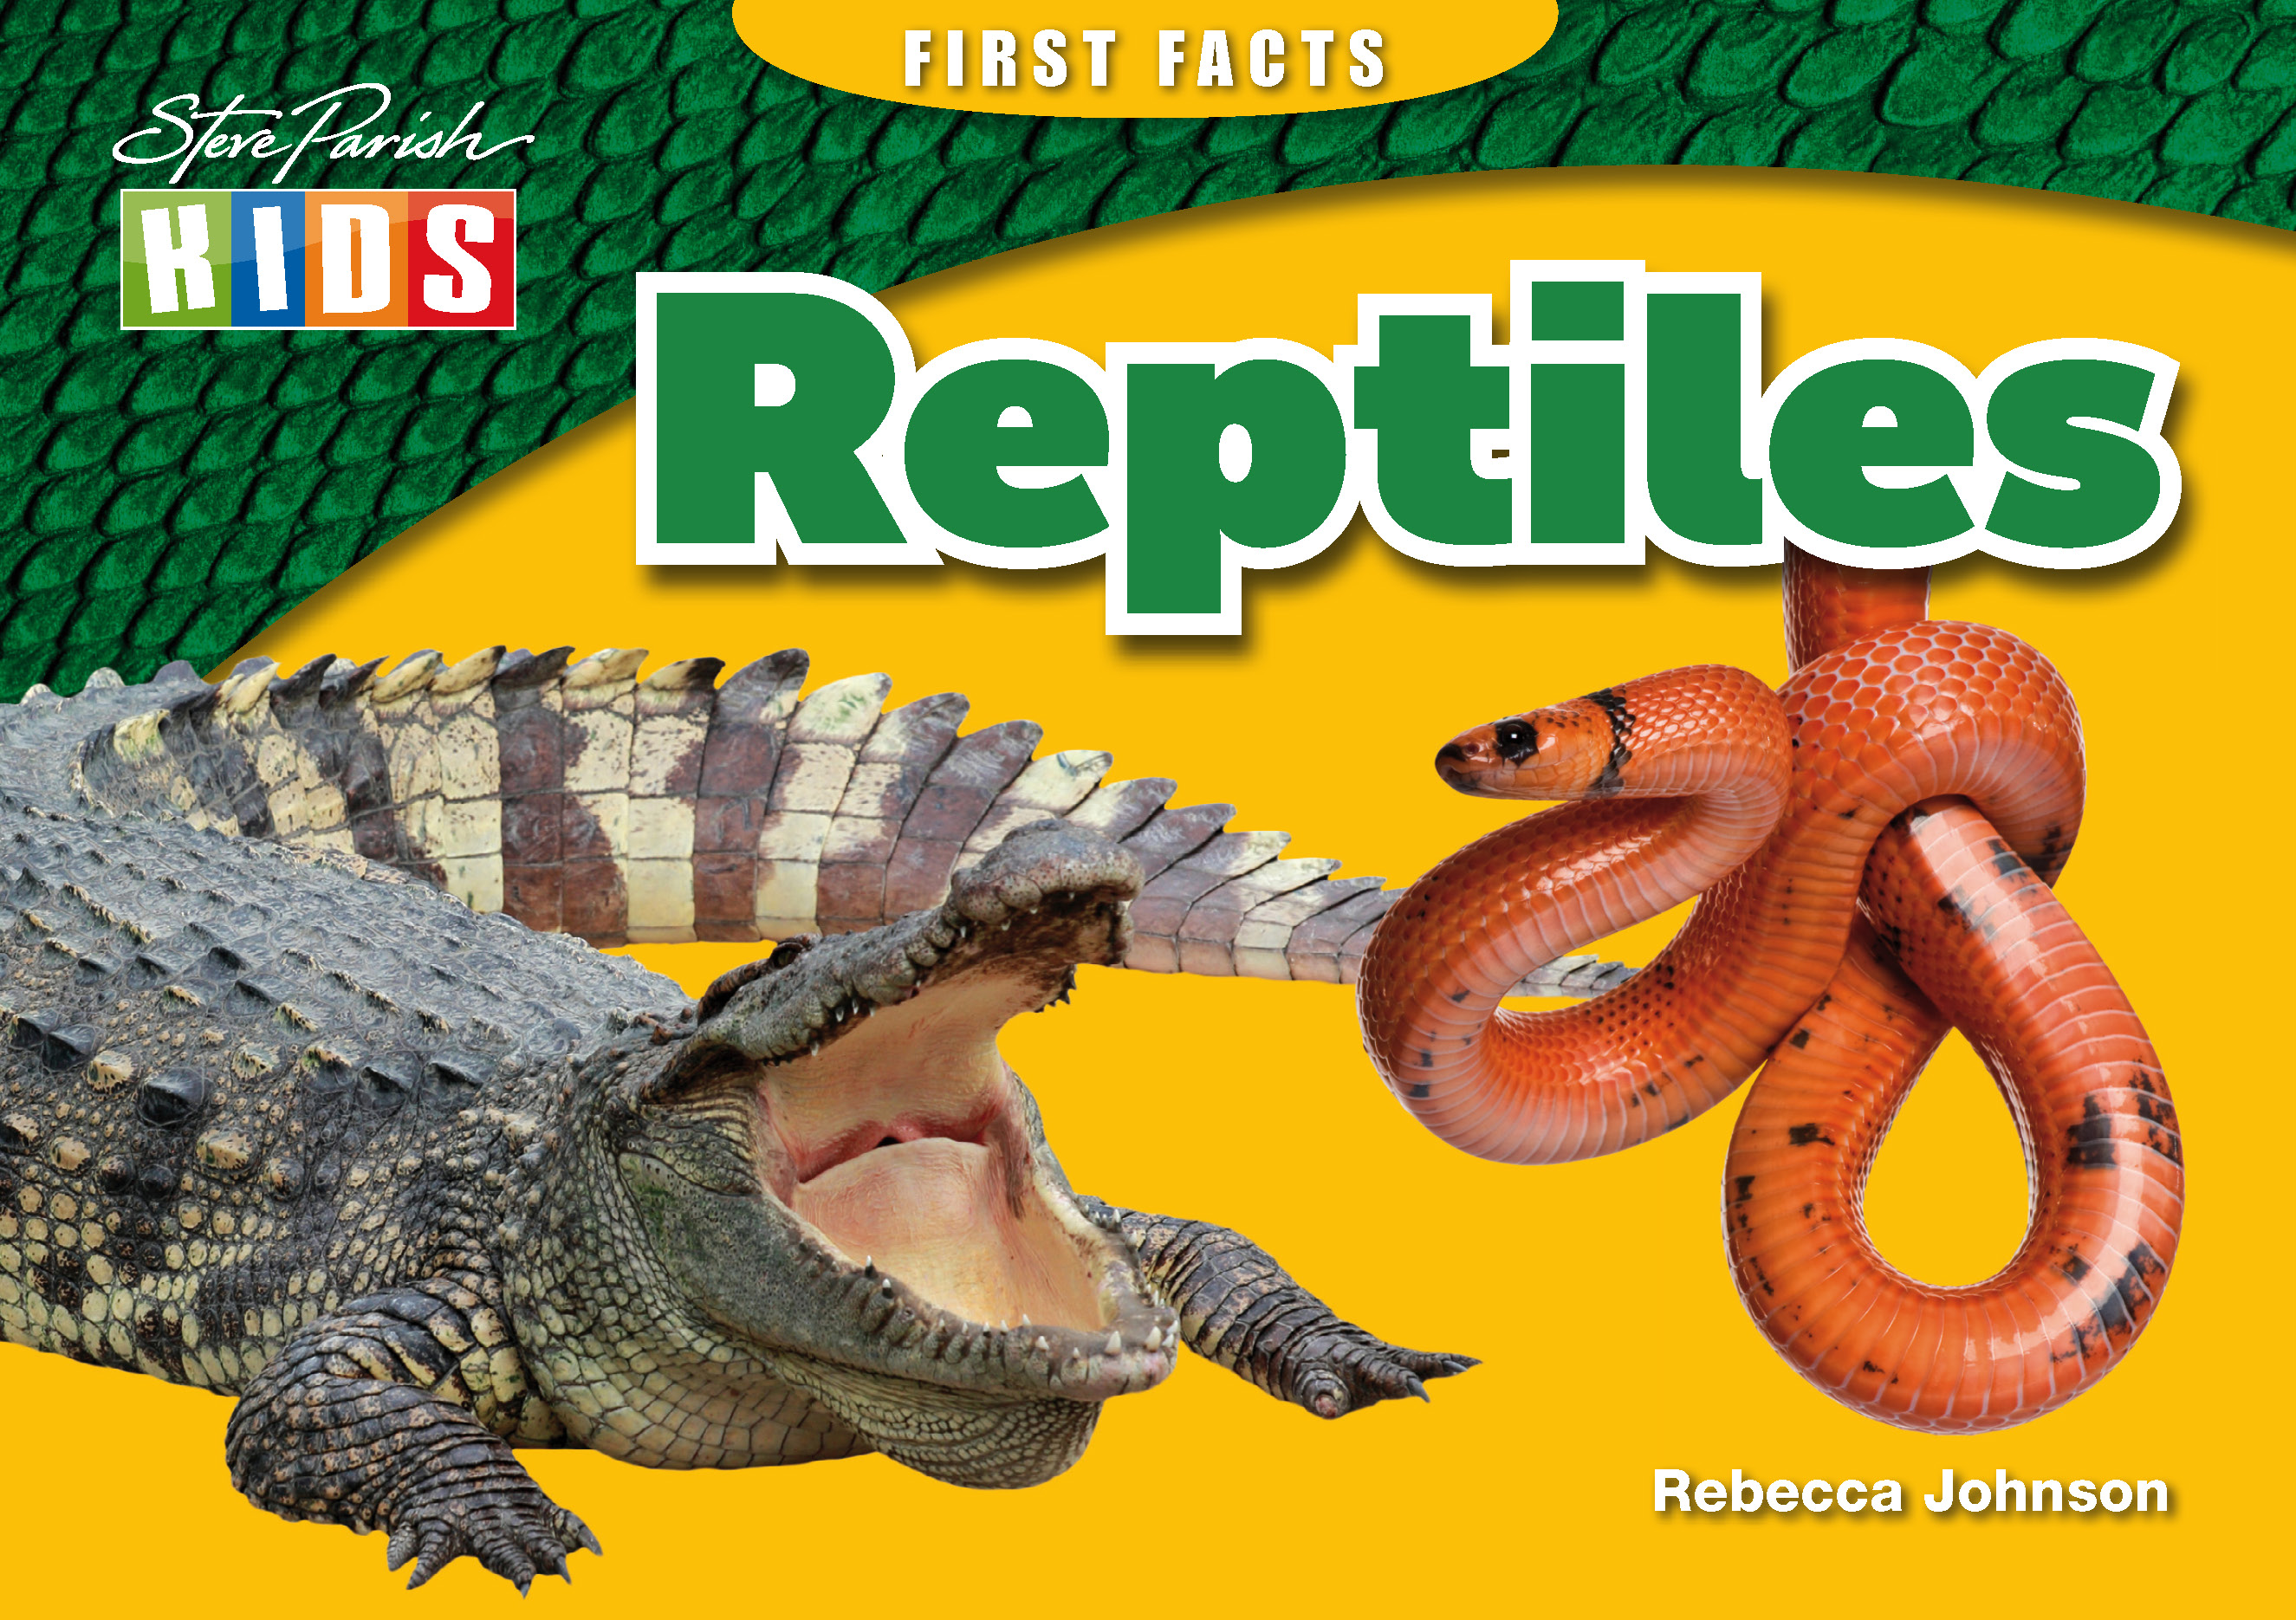 Steve Parish First Facts Story Book: Reptiles